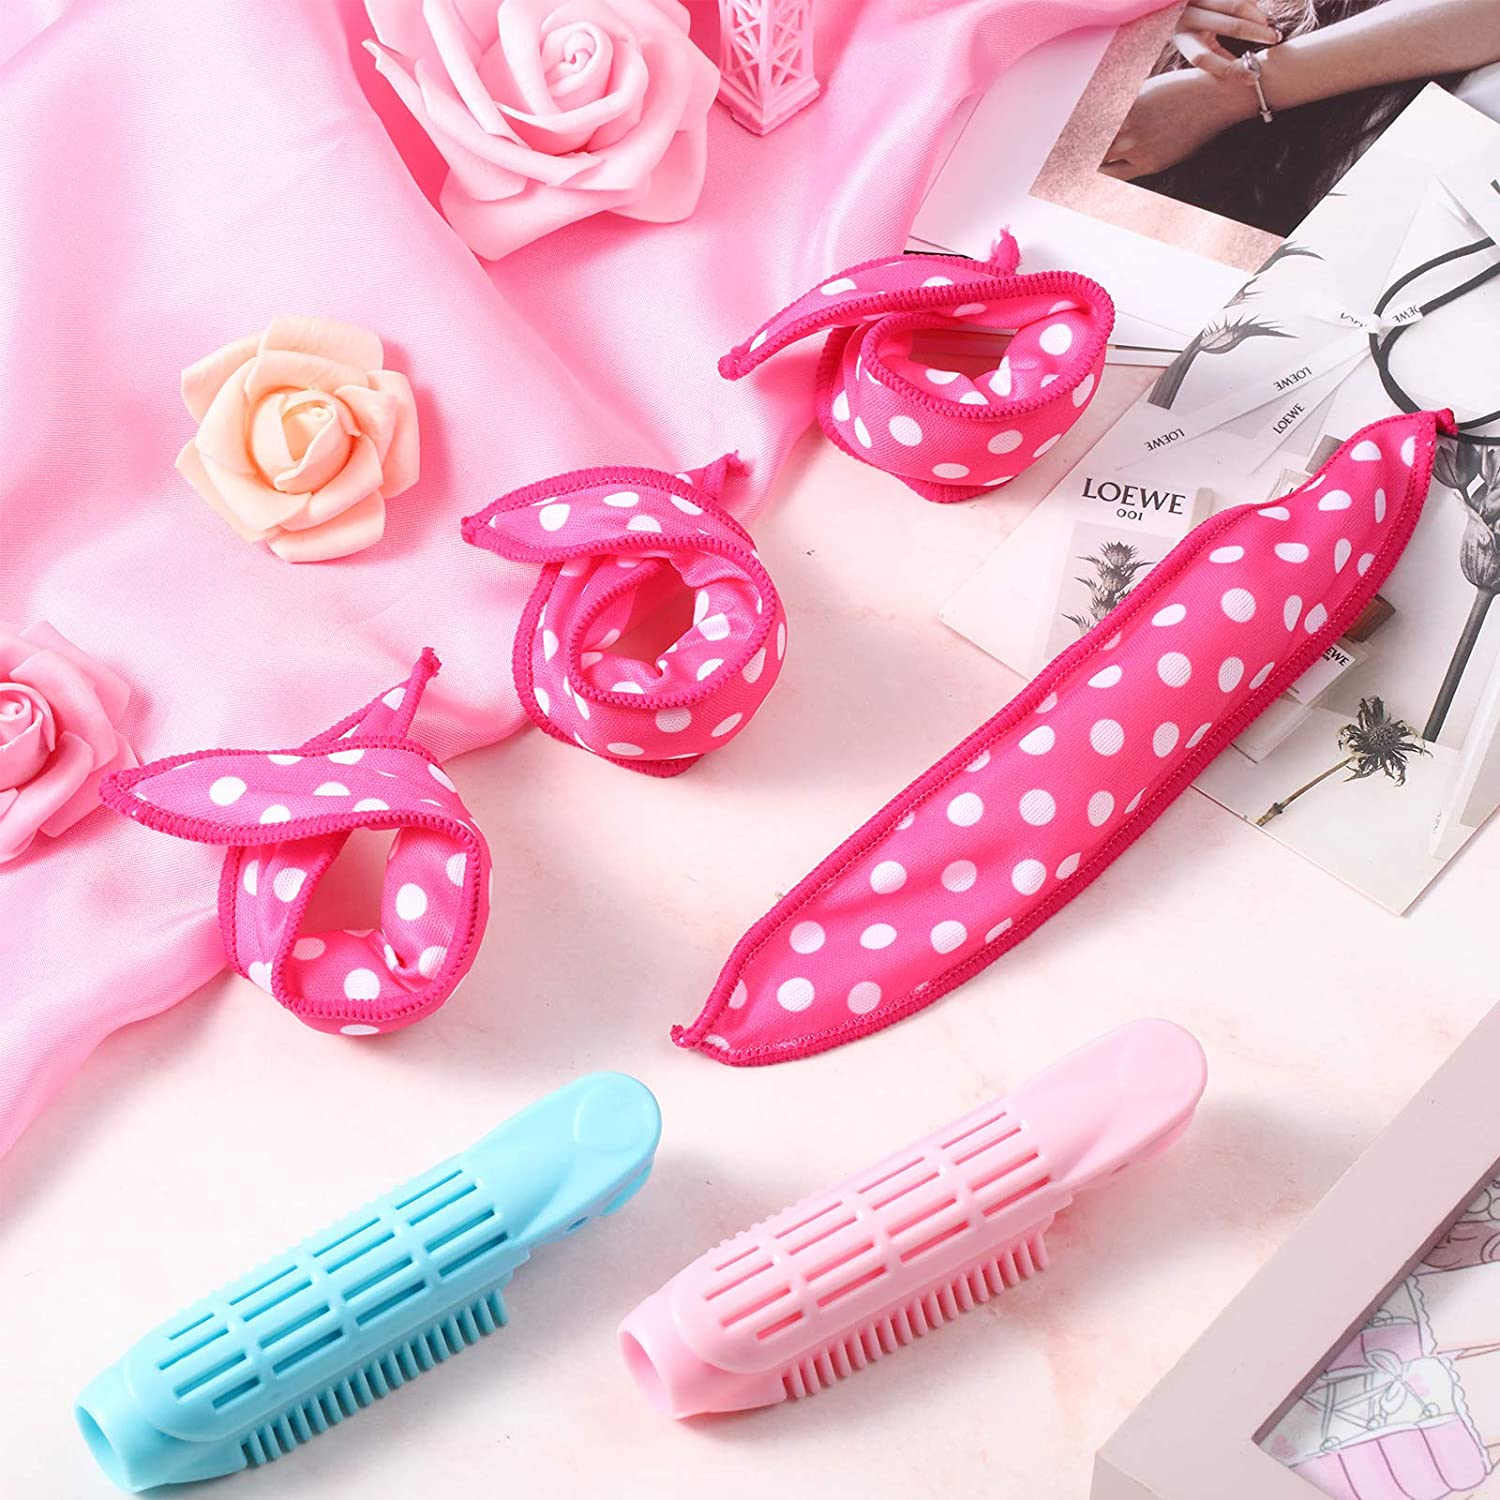 14 Pieces Volumizing Hair Root Clip and Hair Curler Rollers Set, Natural Fluffy Hair Clips Clamps Self Grip Volume Hair Curler Rollers Hair Styling Hairdressing Tools for Women Girls